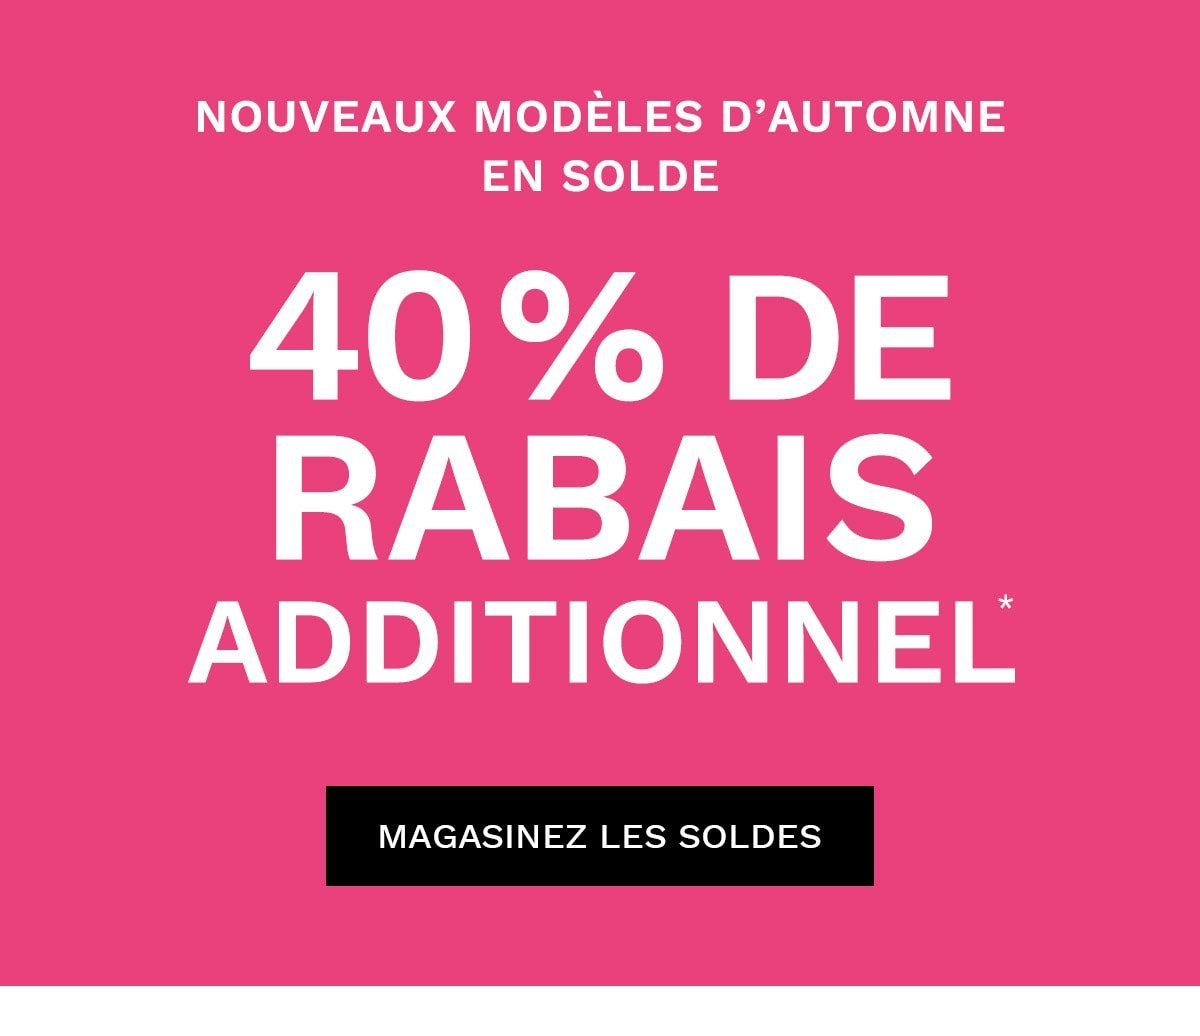 40 % de rabais ADDITIONNEL*